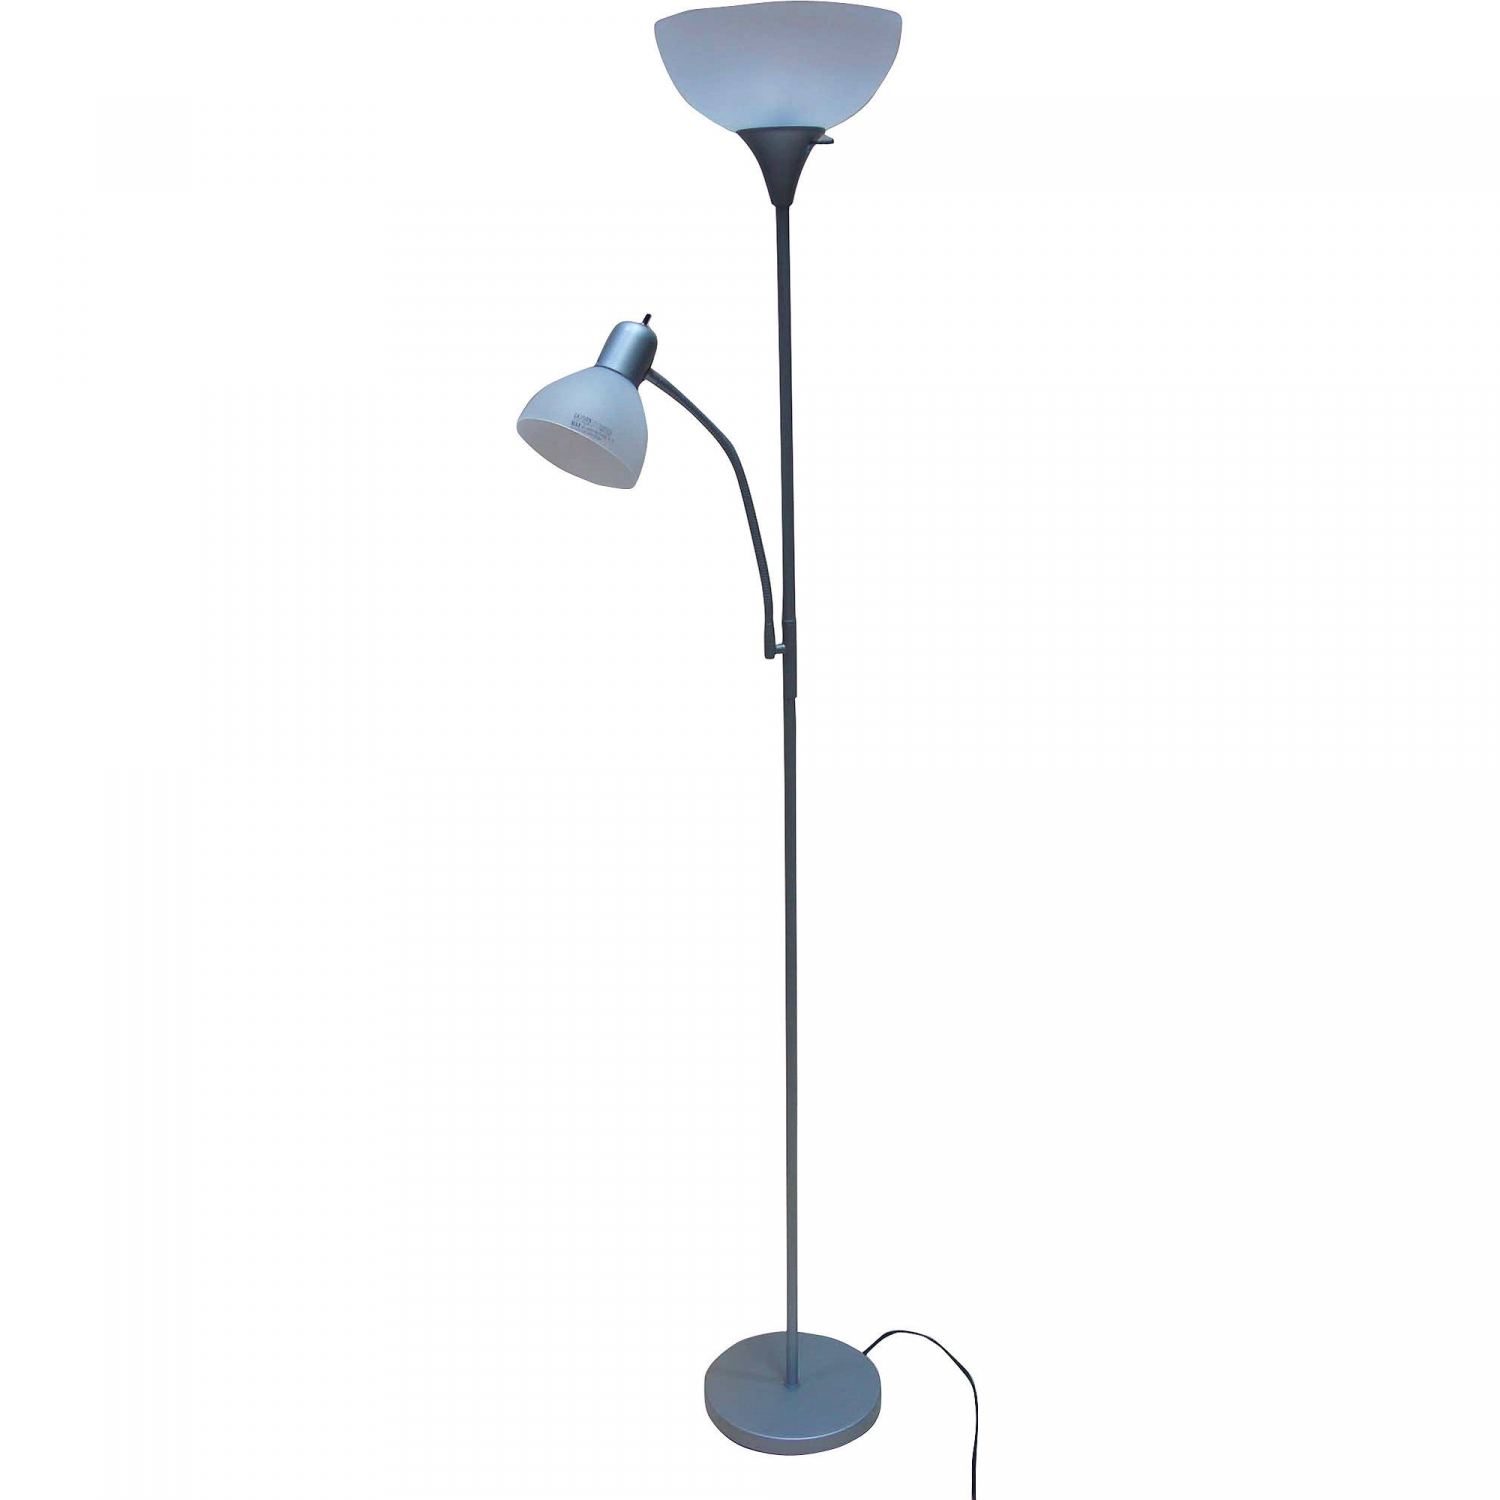 Silver Metal Floor Lamp With Reading Light For Living Room Uplight Stand 72 New Ebay